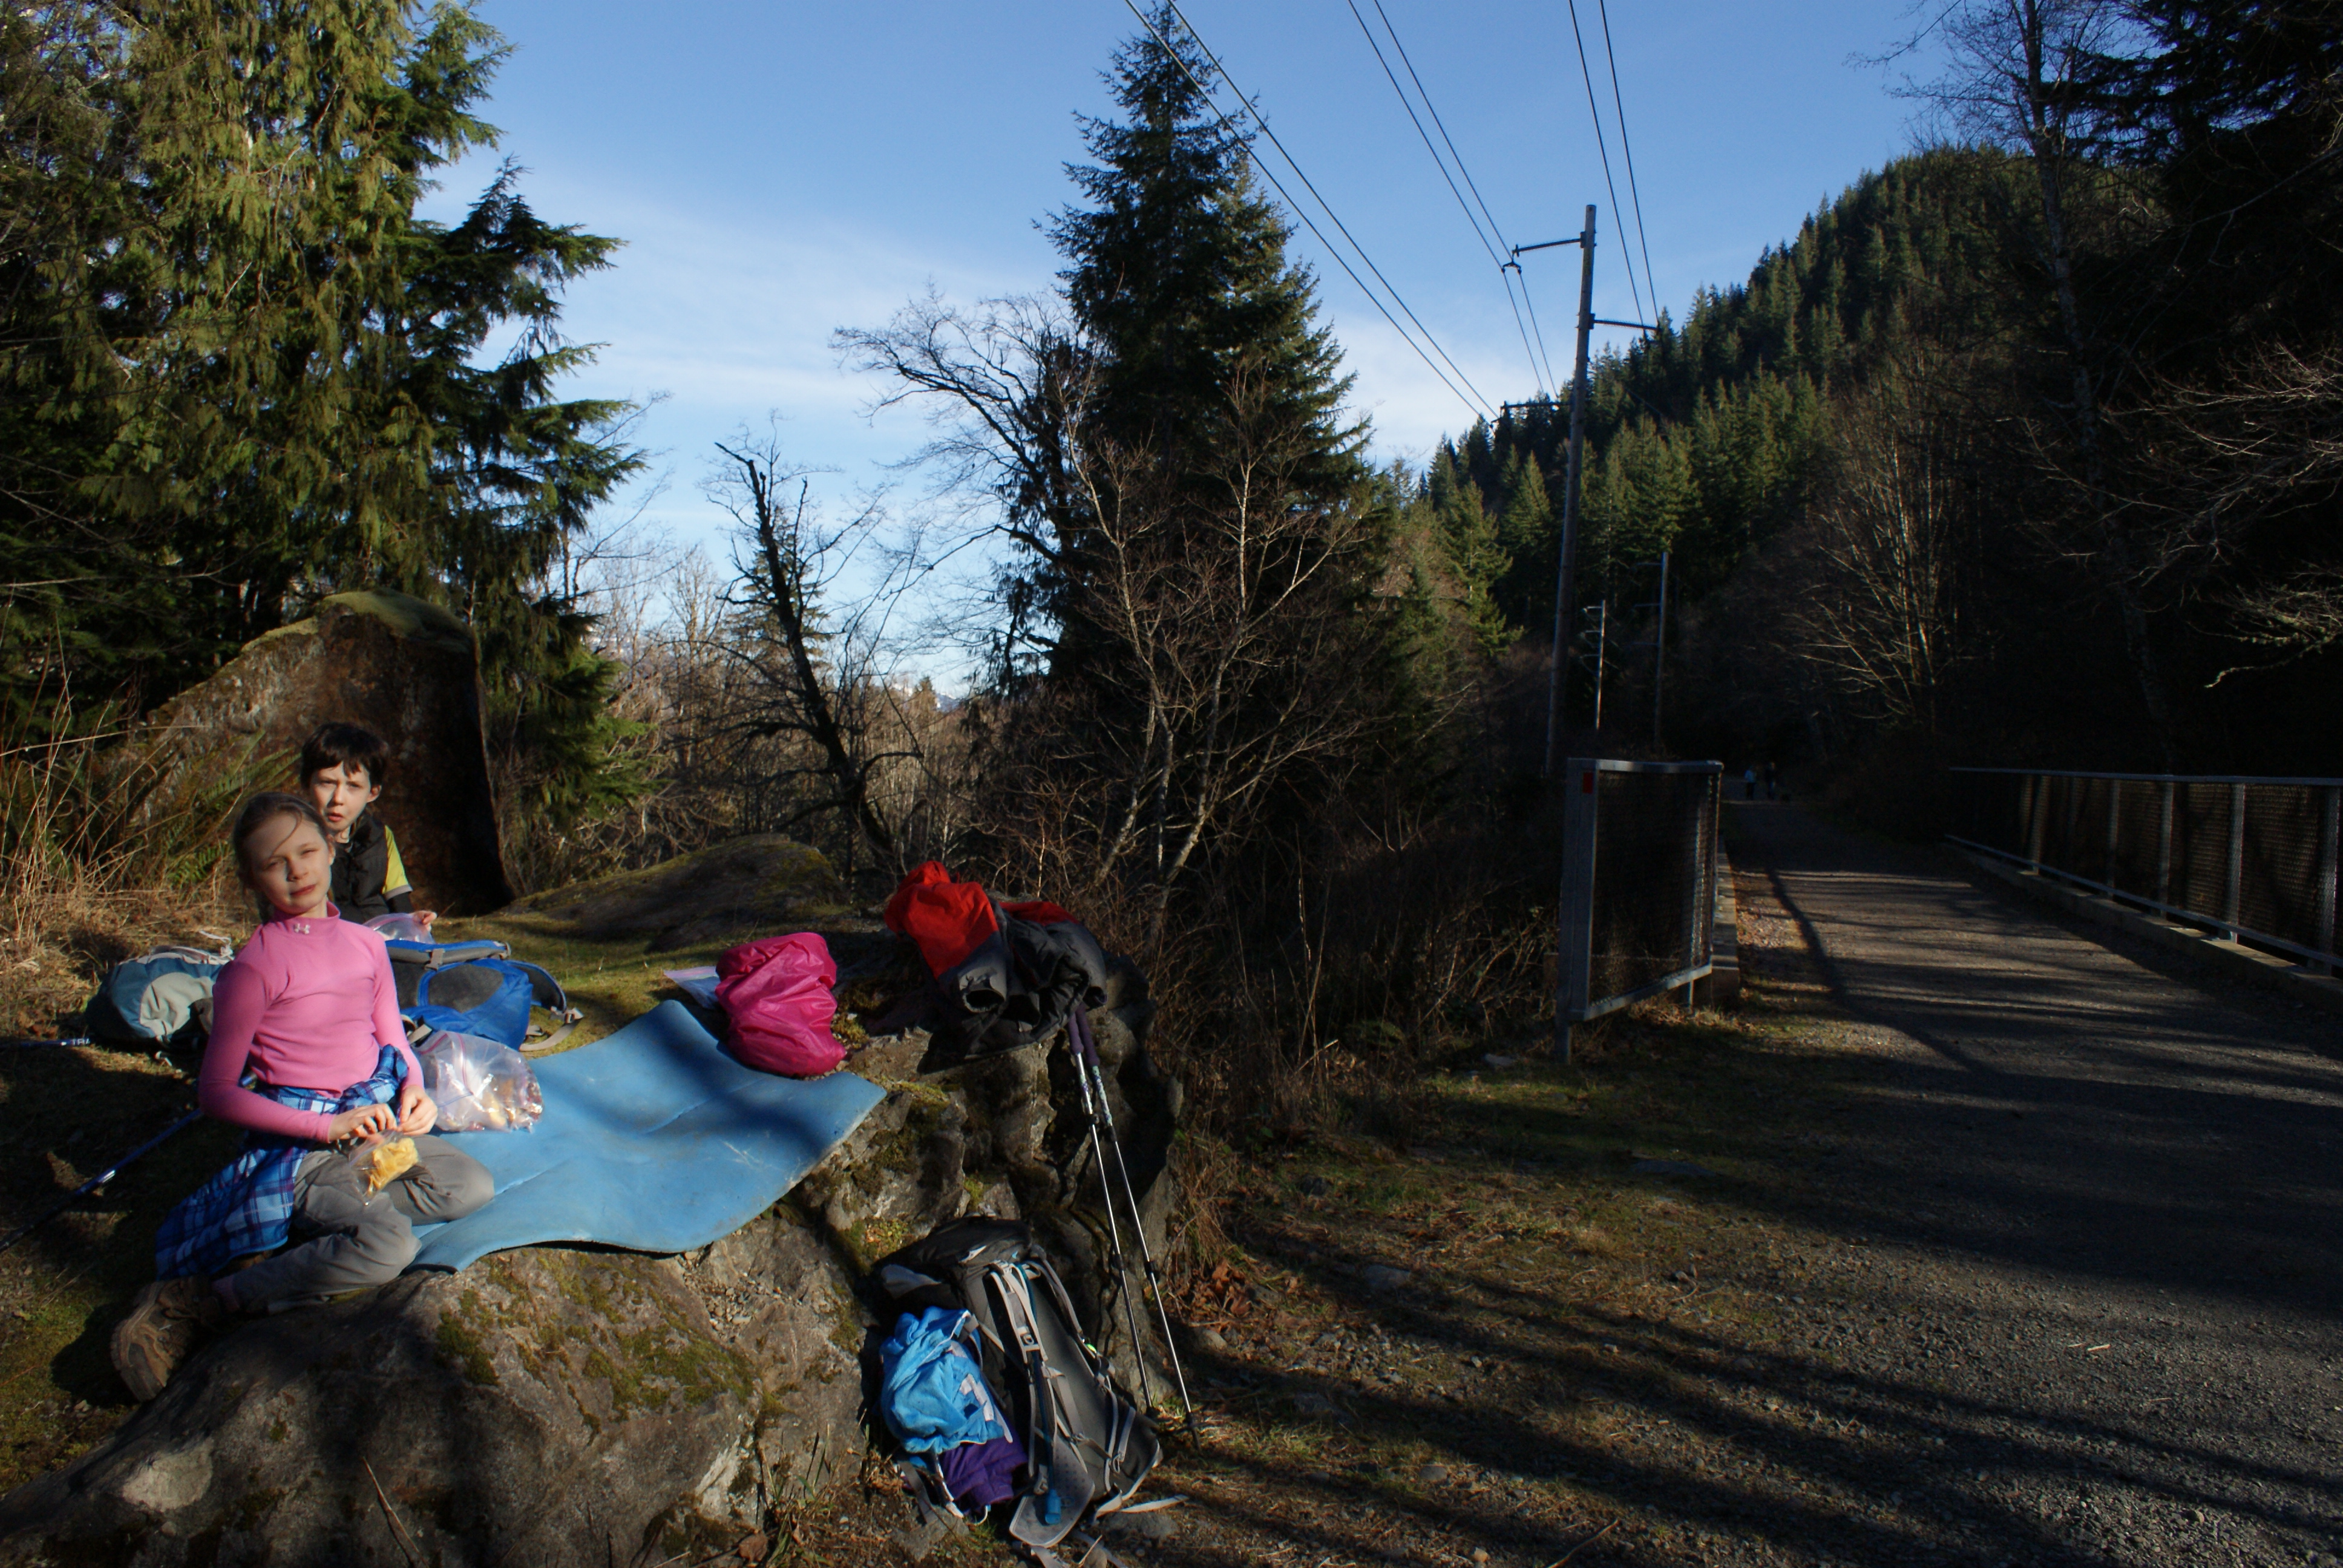 hiking with children, winter hikes washington, rails to trails